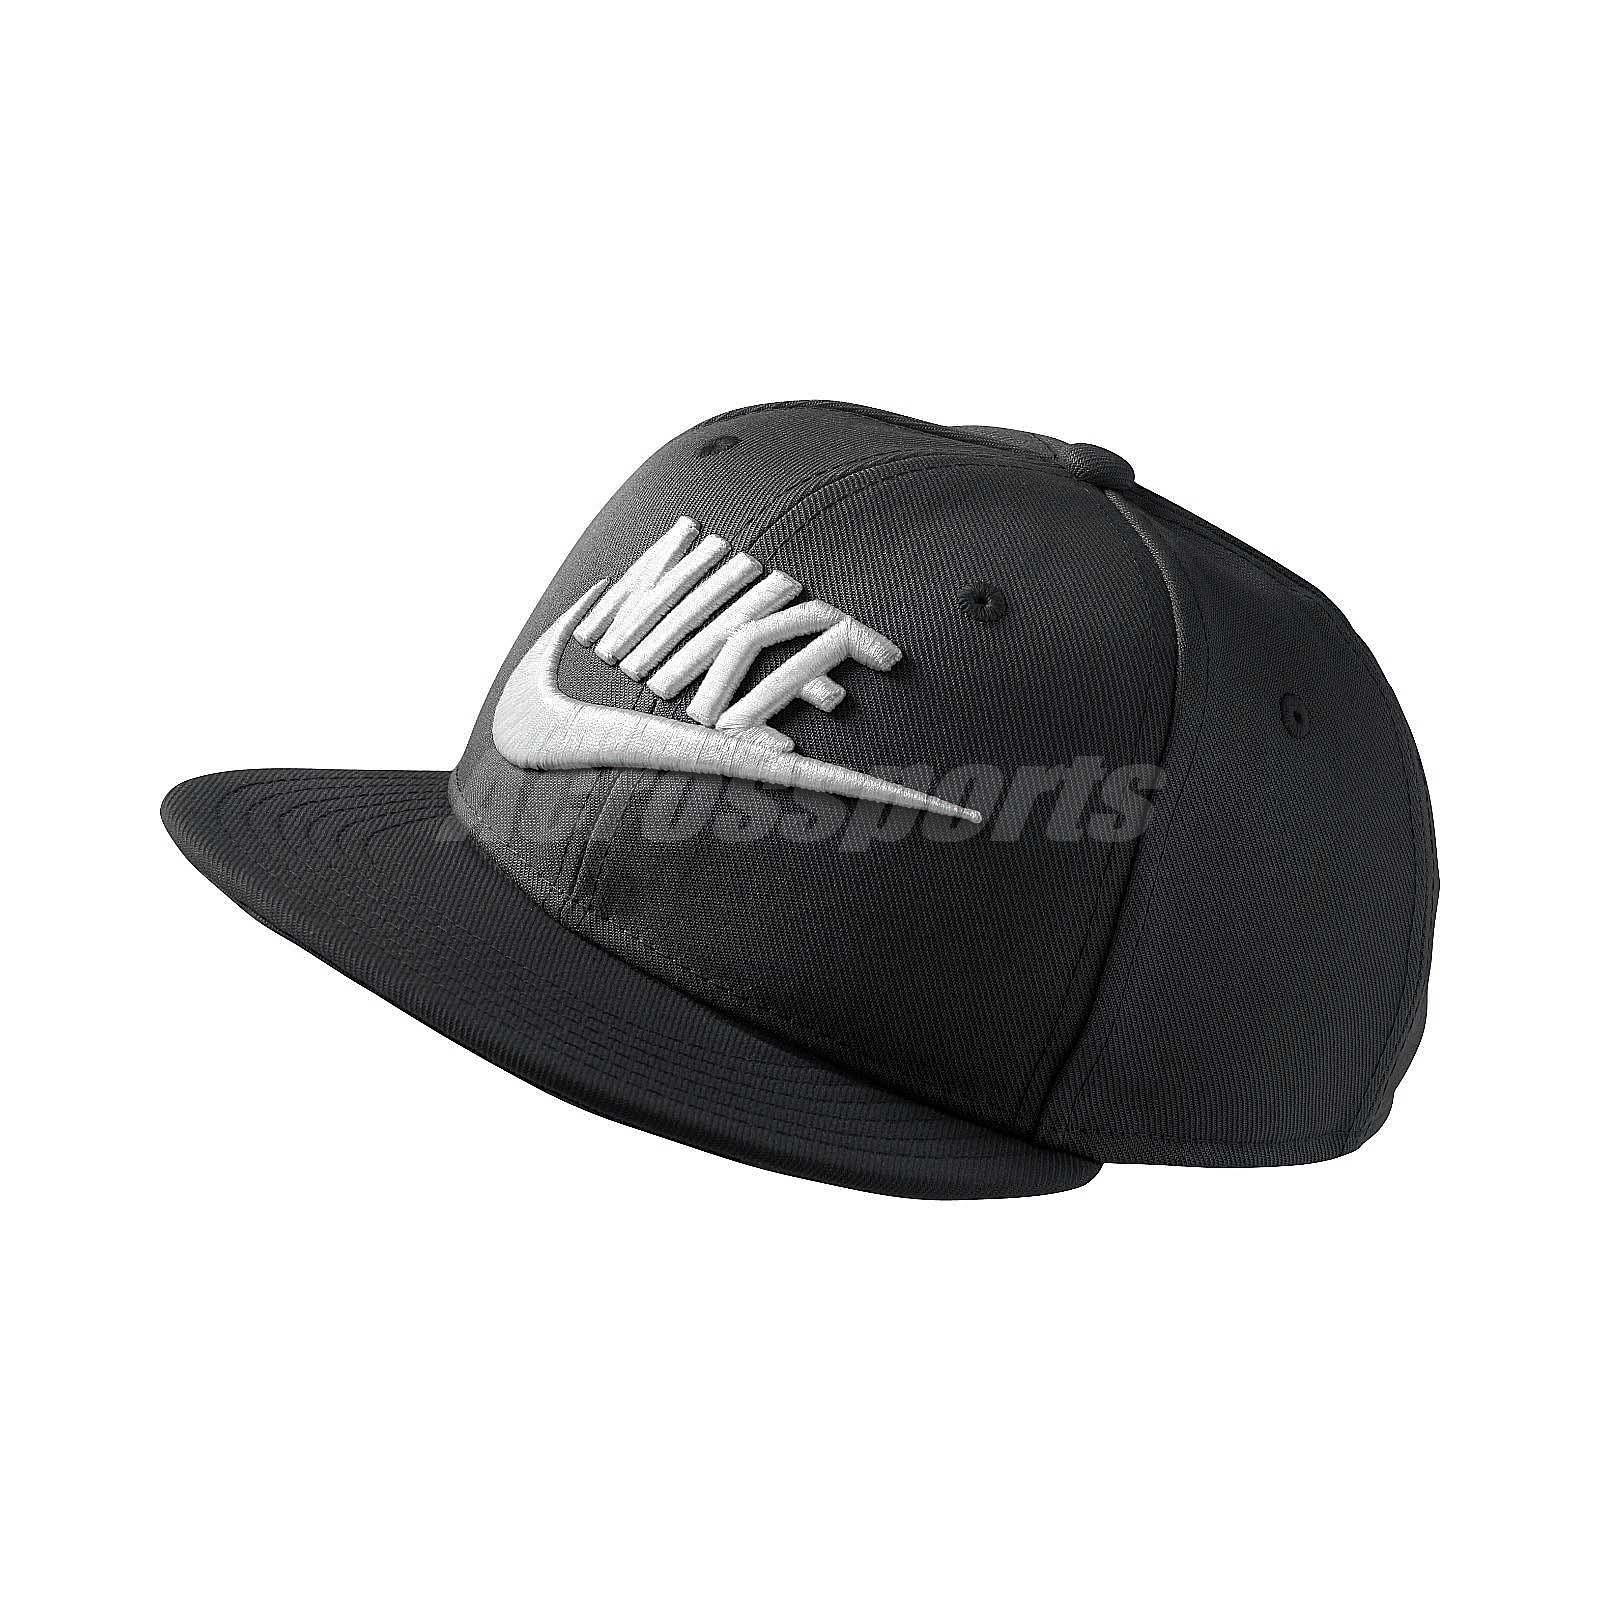 Details about Nike True Cap Futura Snapback Hat Black White Sports Running  Baseball 614590-010 343fa9659a2